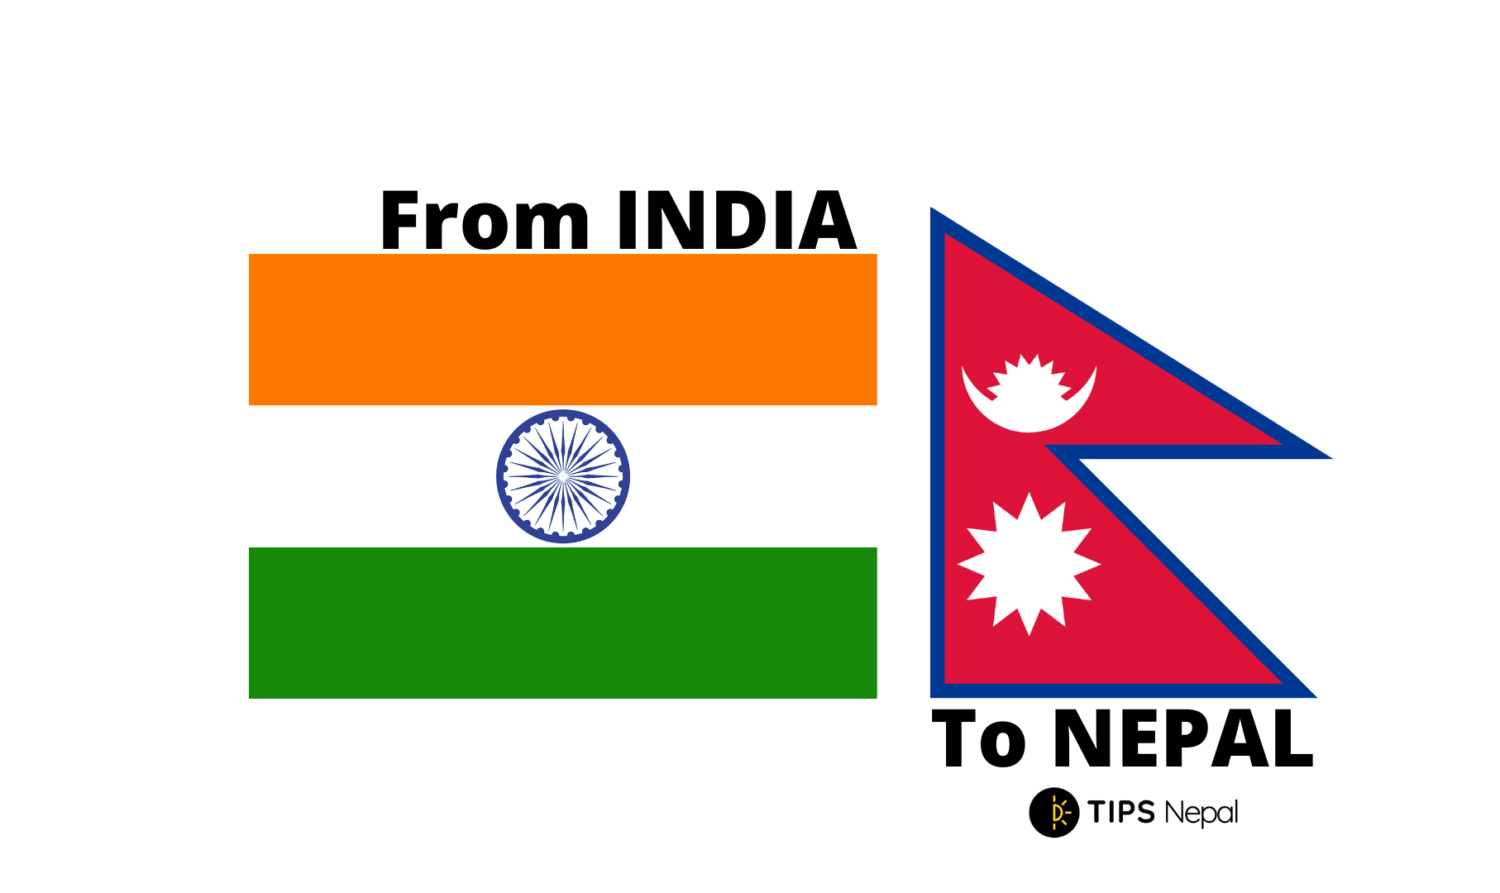 How To Visit Nepal From India With Safe and Secured Ways in 2021?